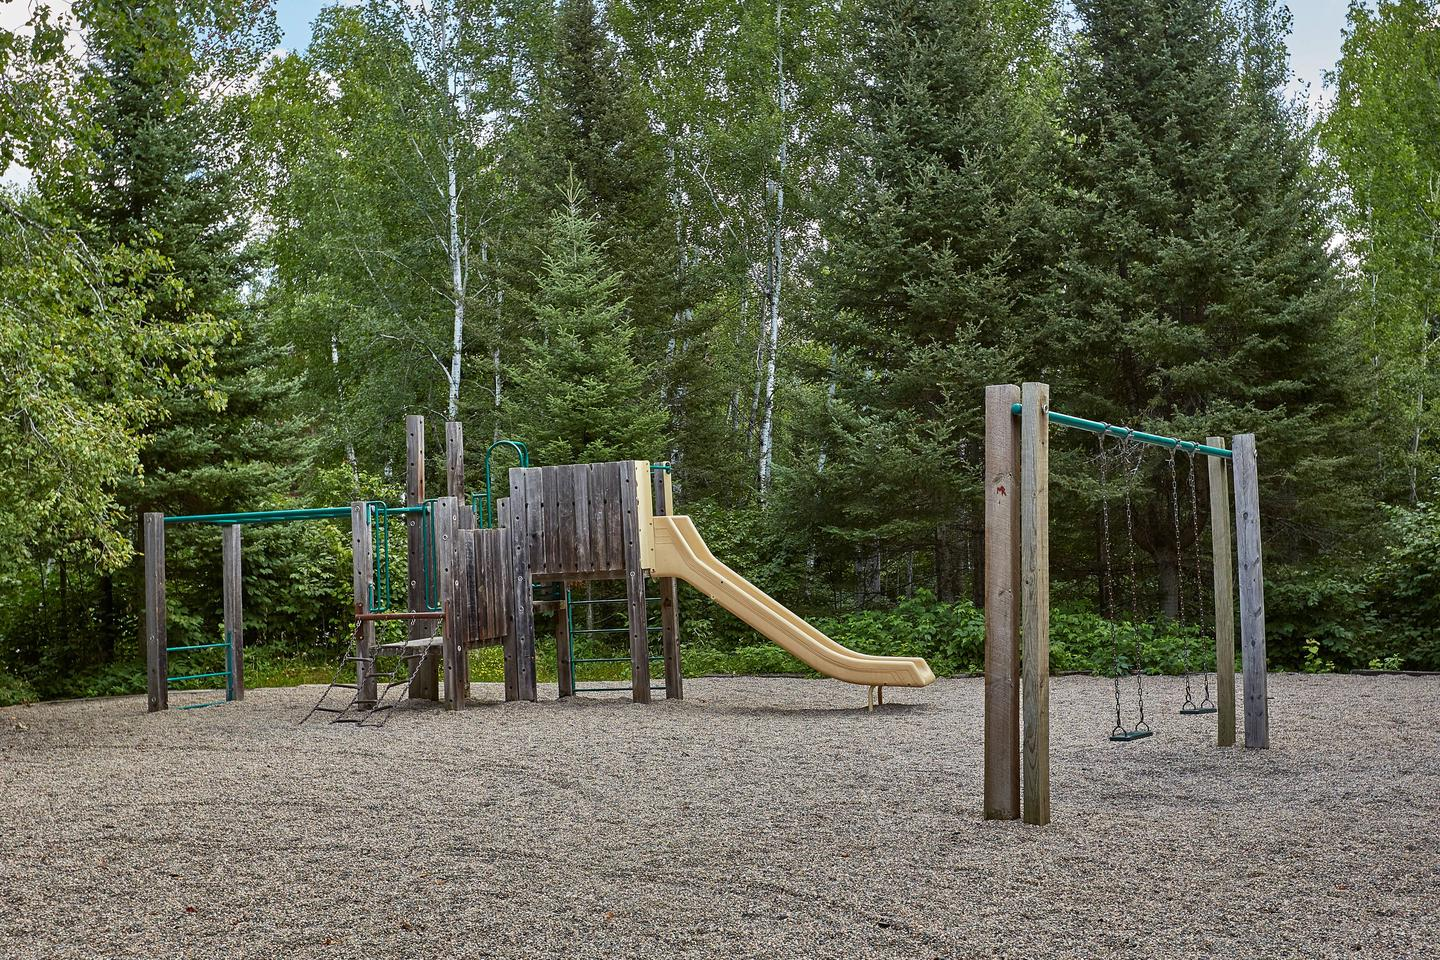 Nearby PalygroundNearby Playground